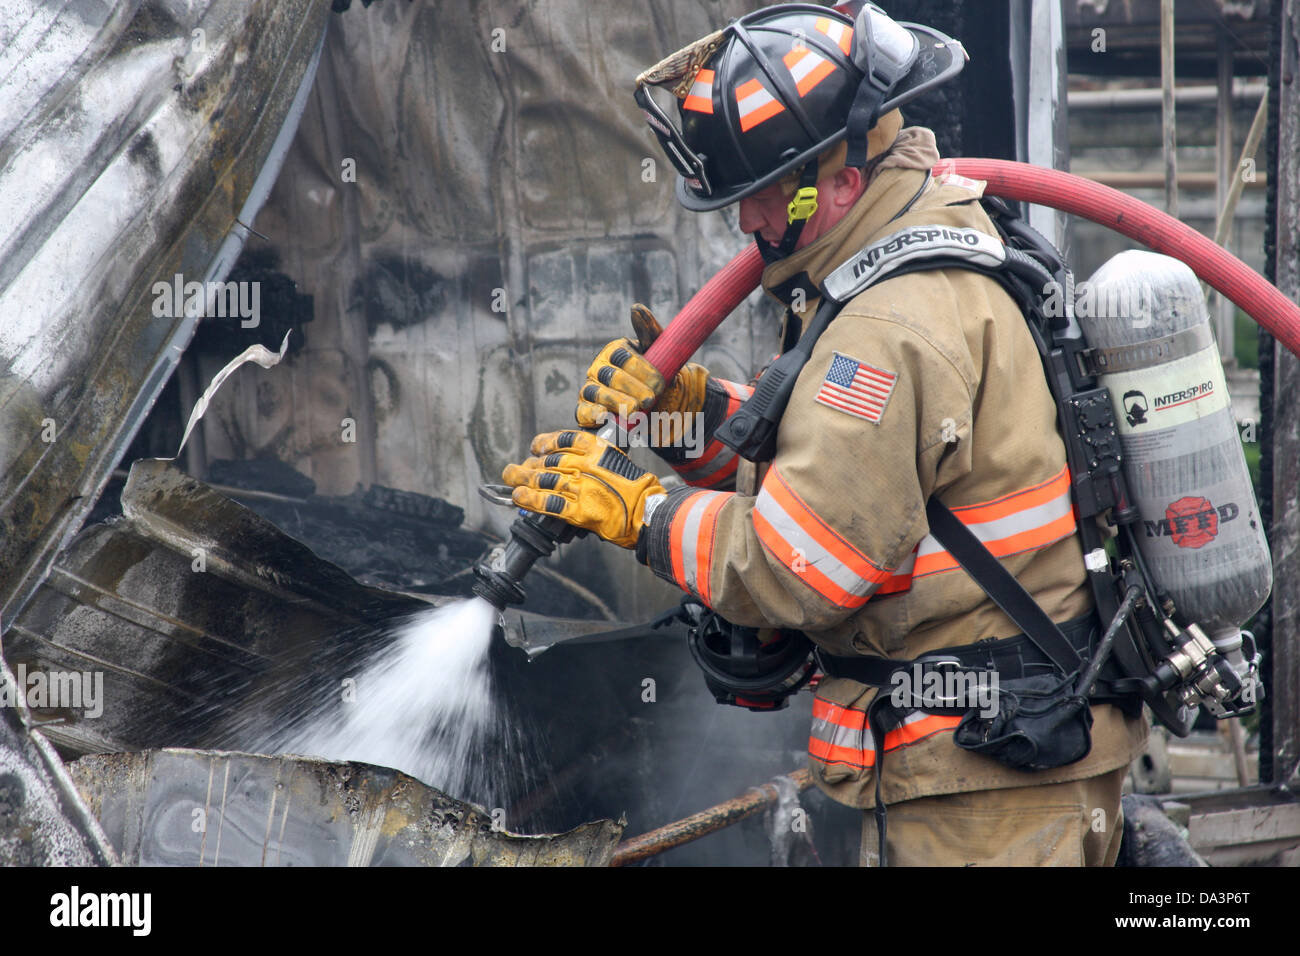 A firefighter using a hoseline to extinguish a hot spot at a fire scene - Stock Image